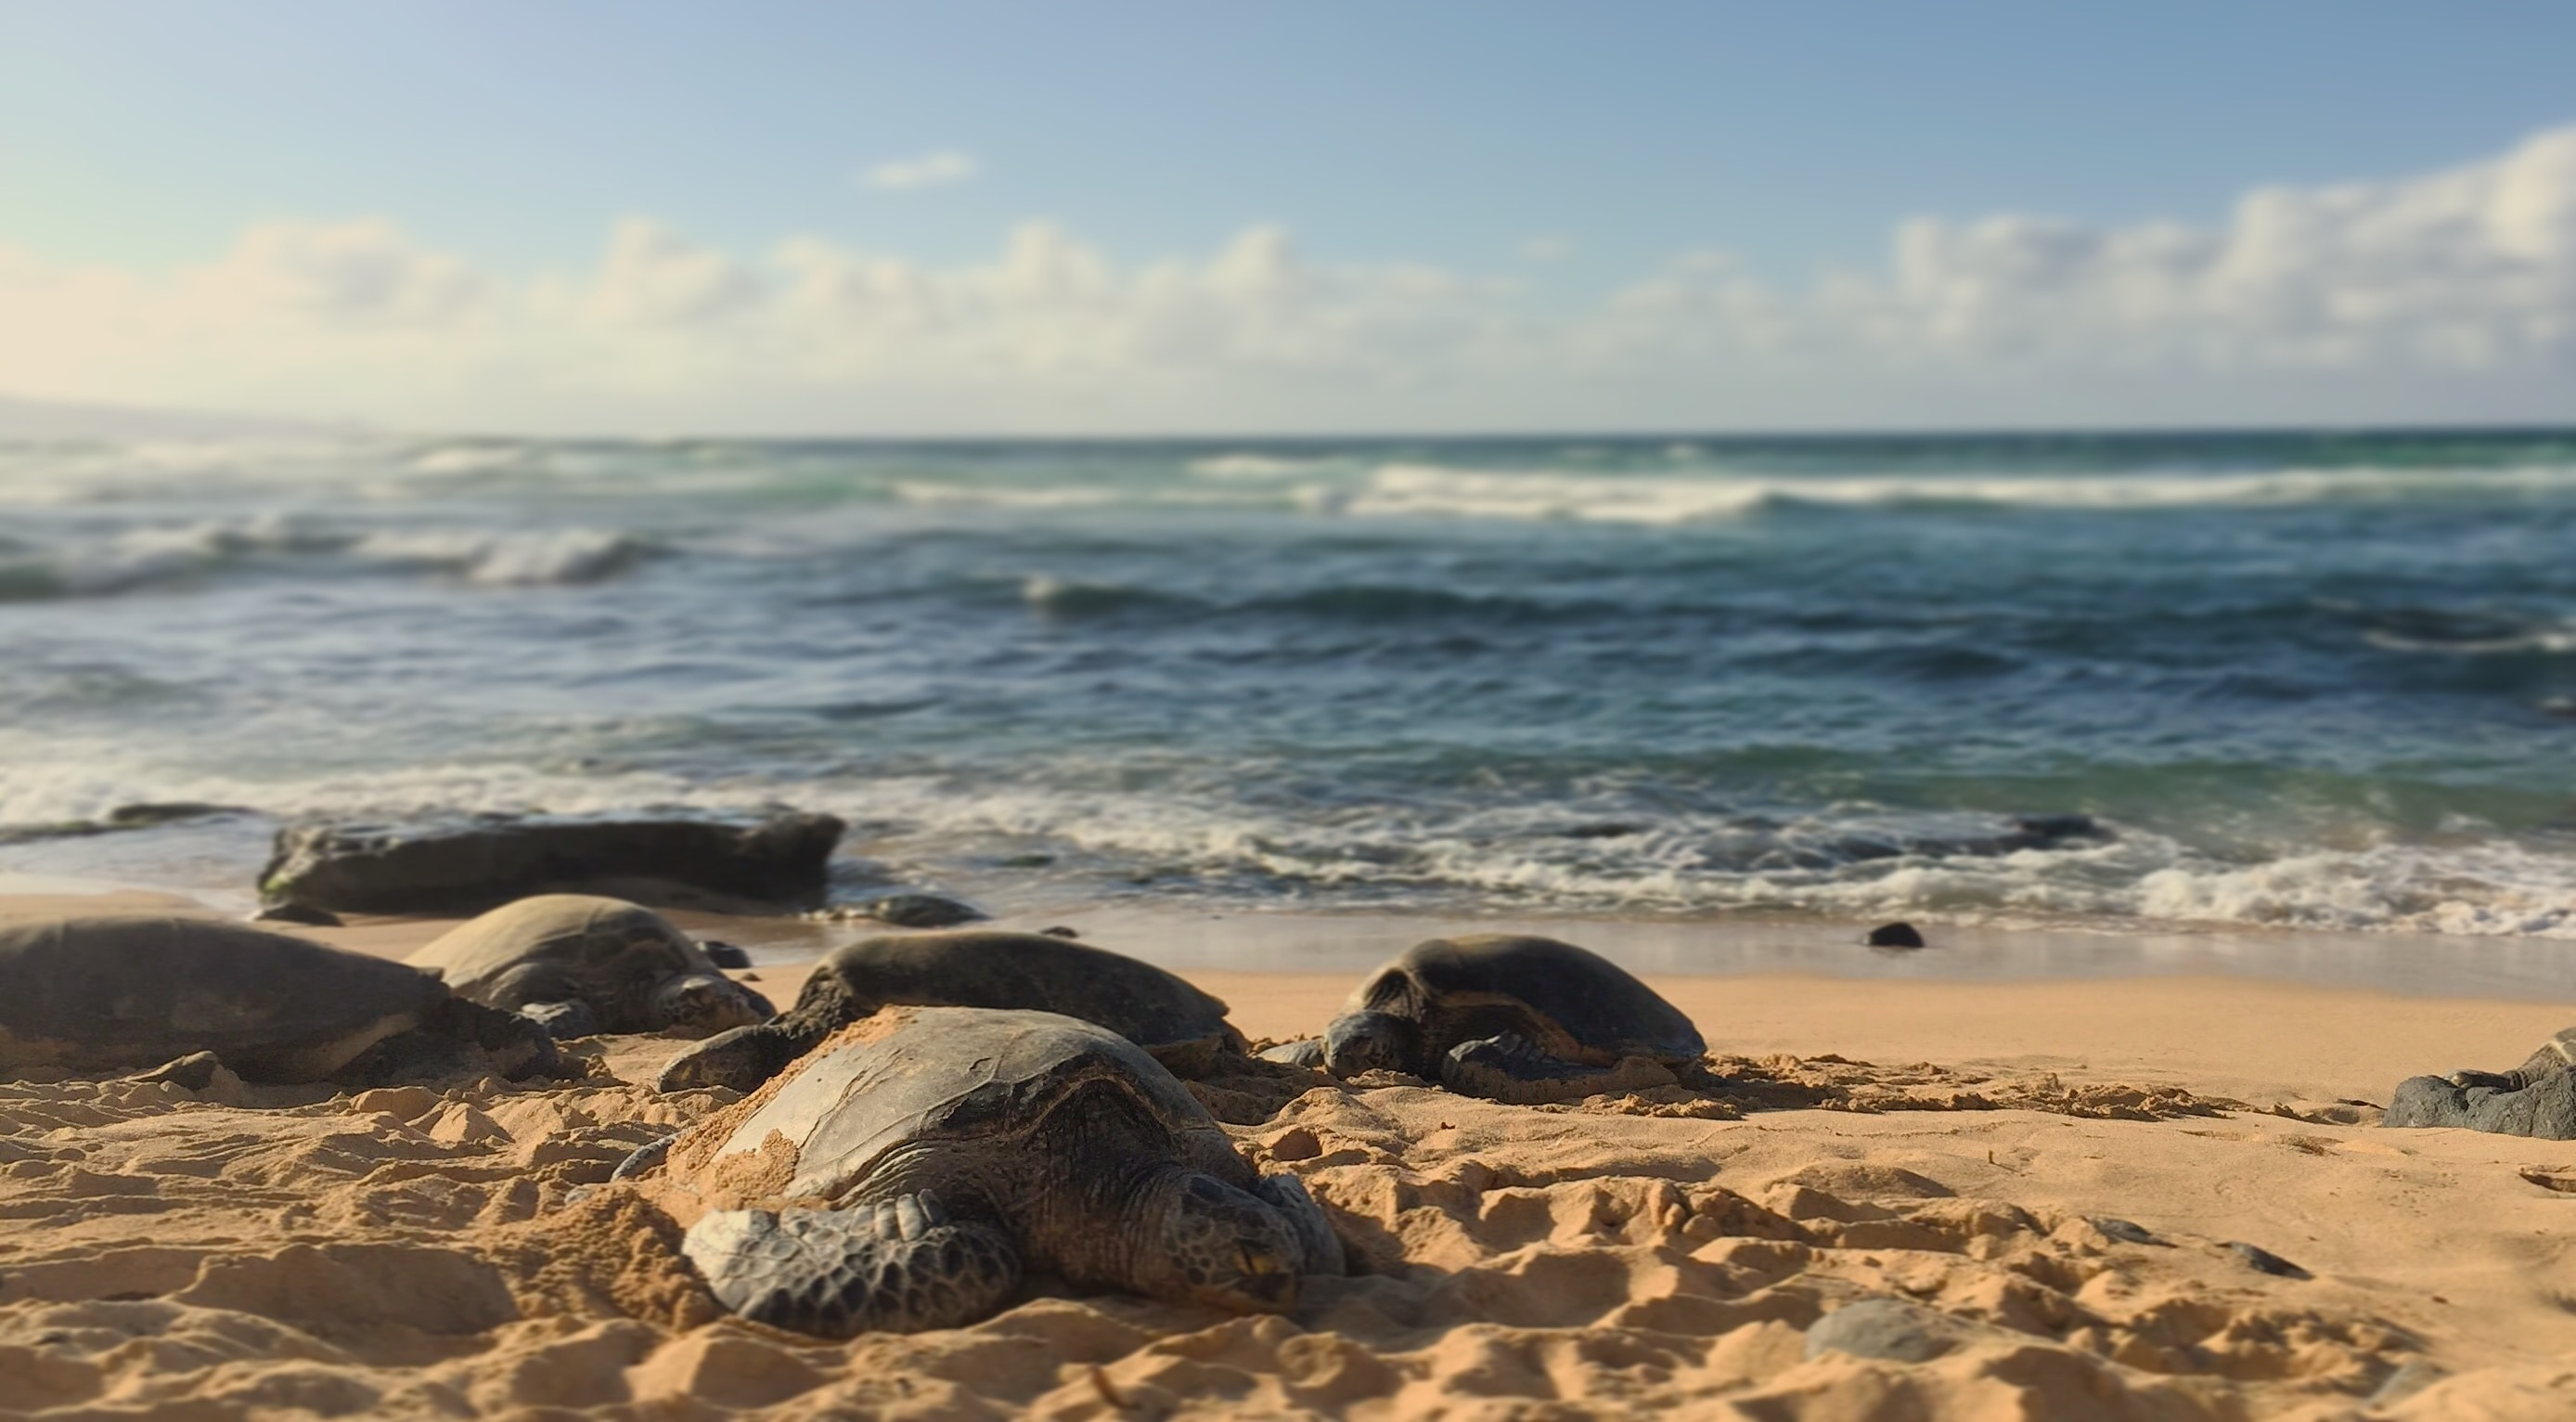 turtle on sand near sea during daytime